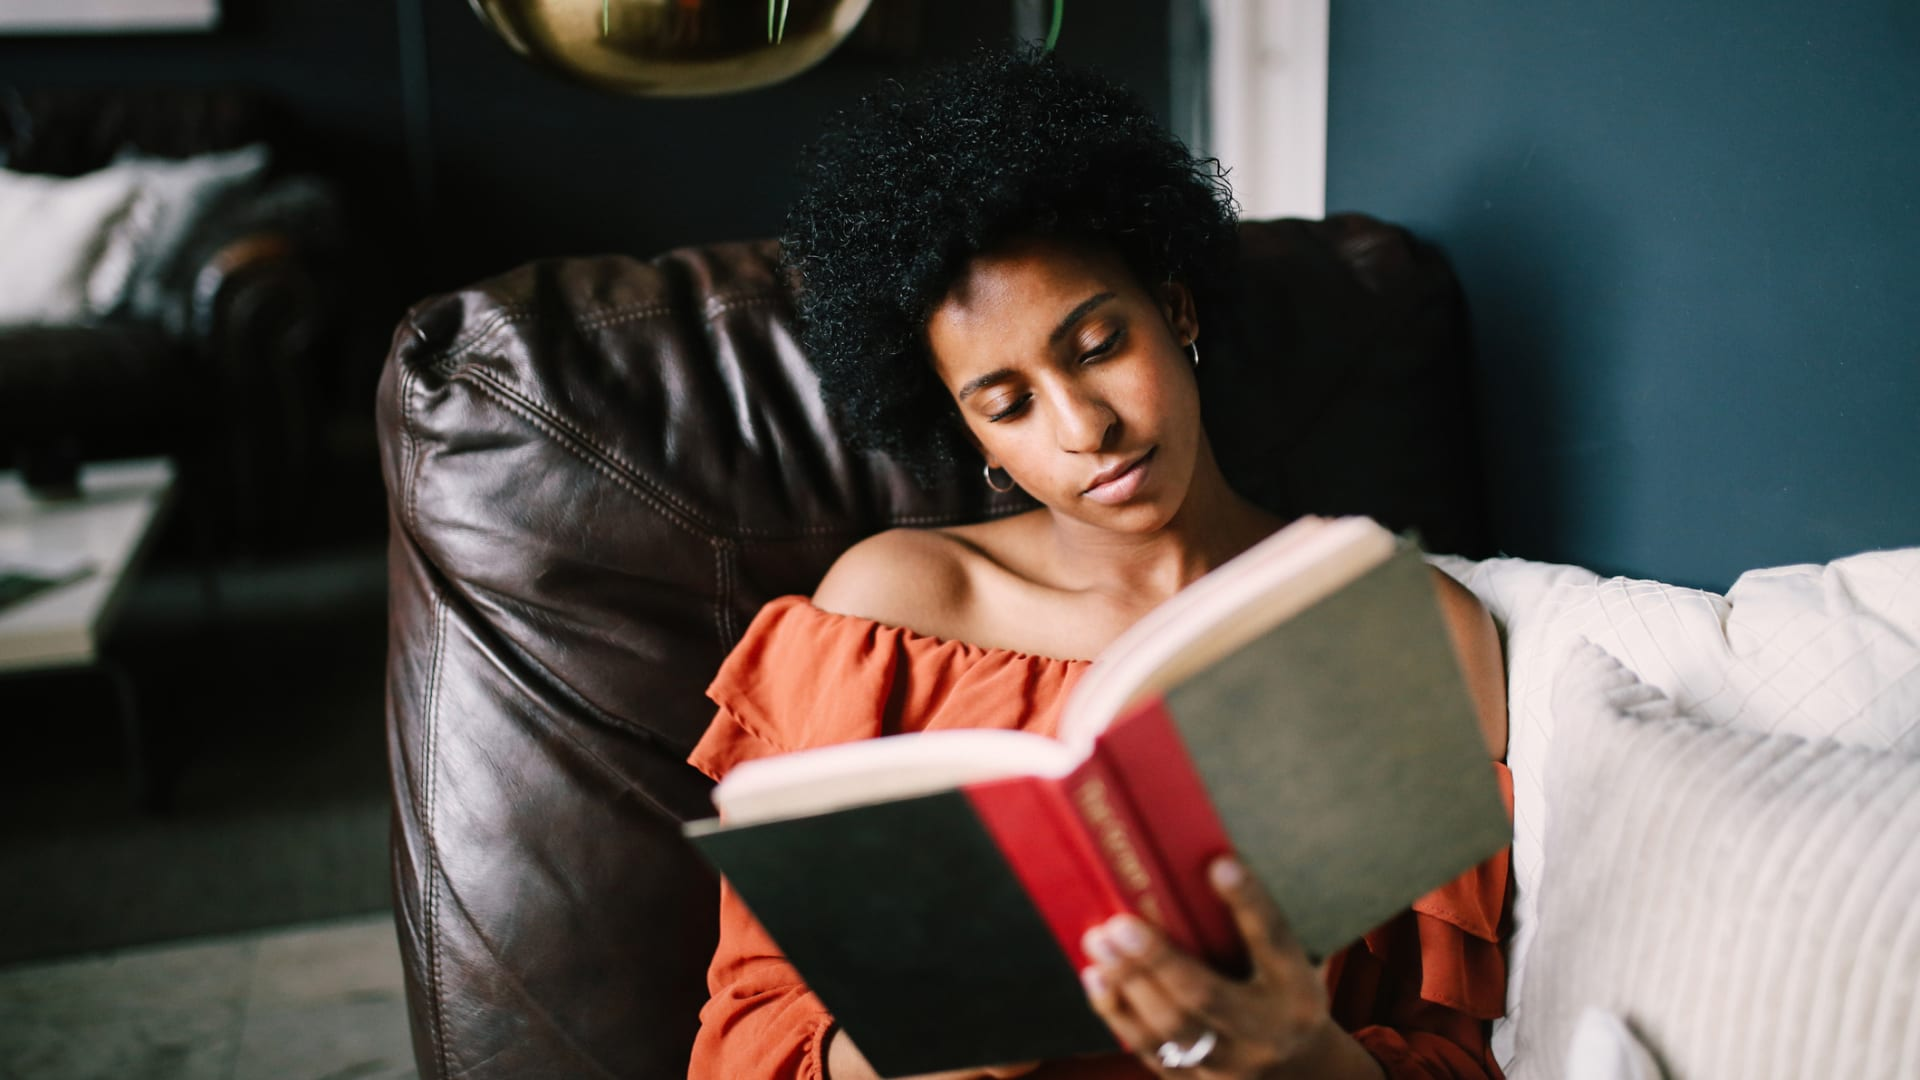 Read Any Good Books Lately? It Could Help Save Your Business